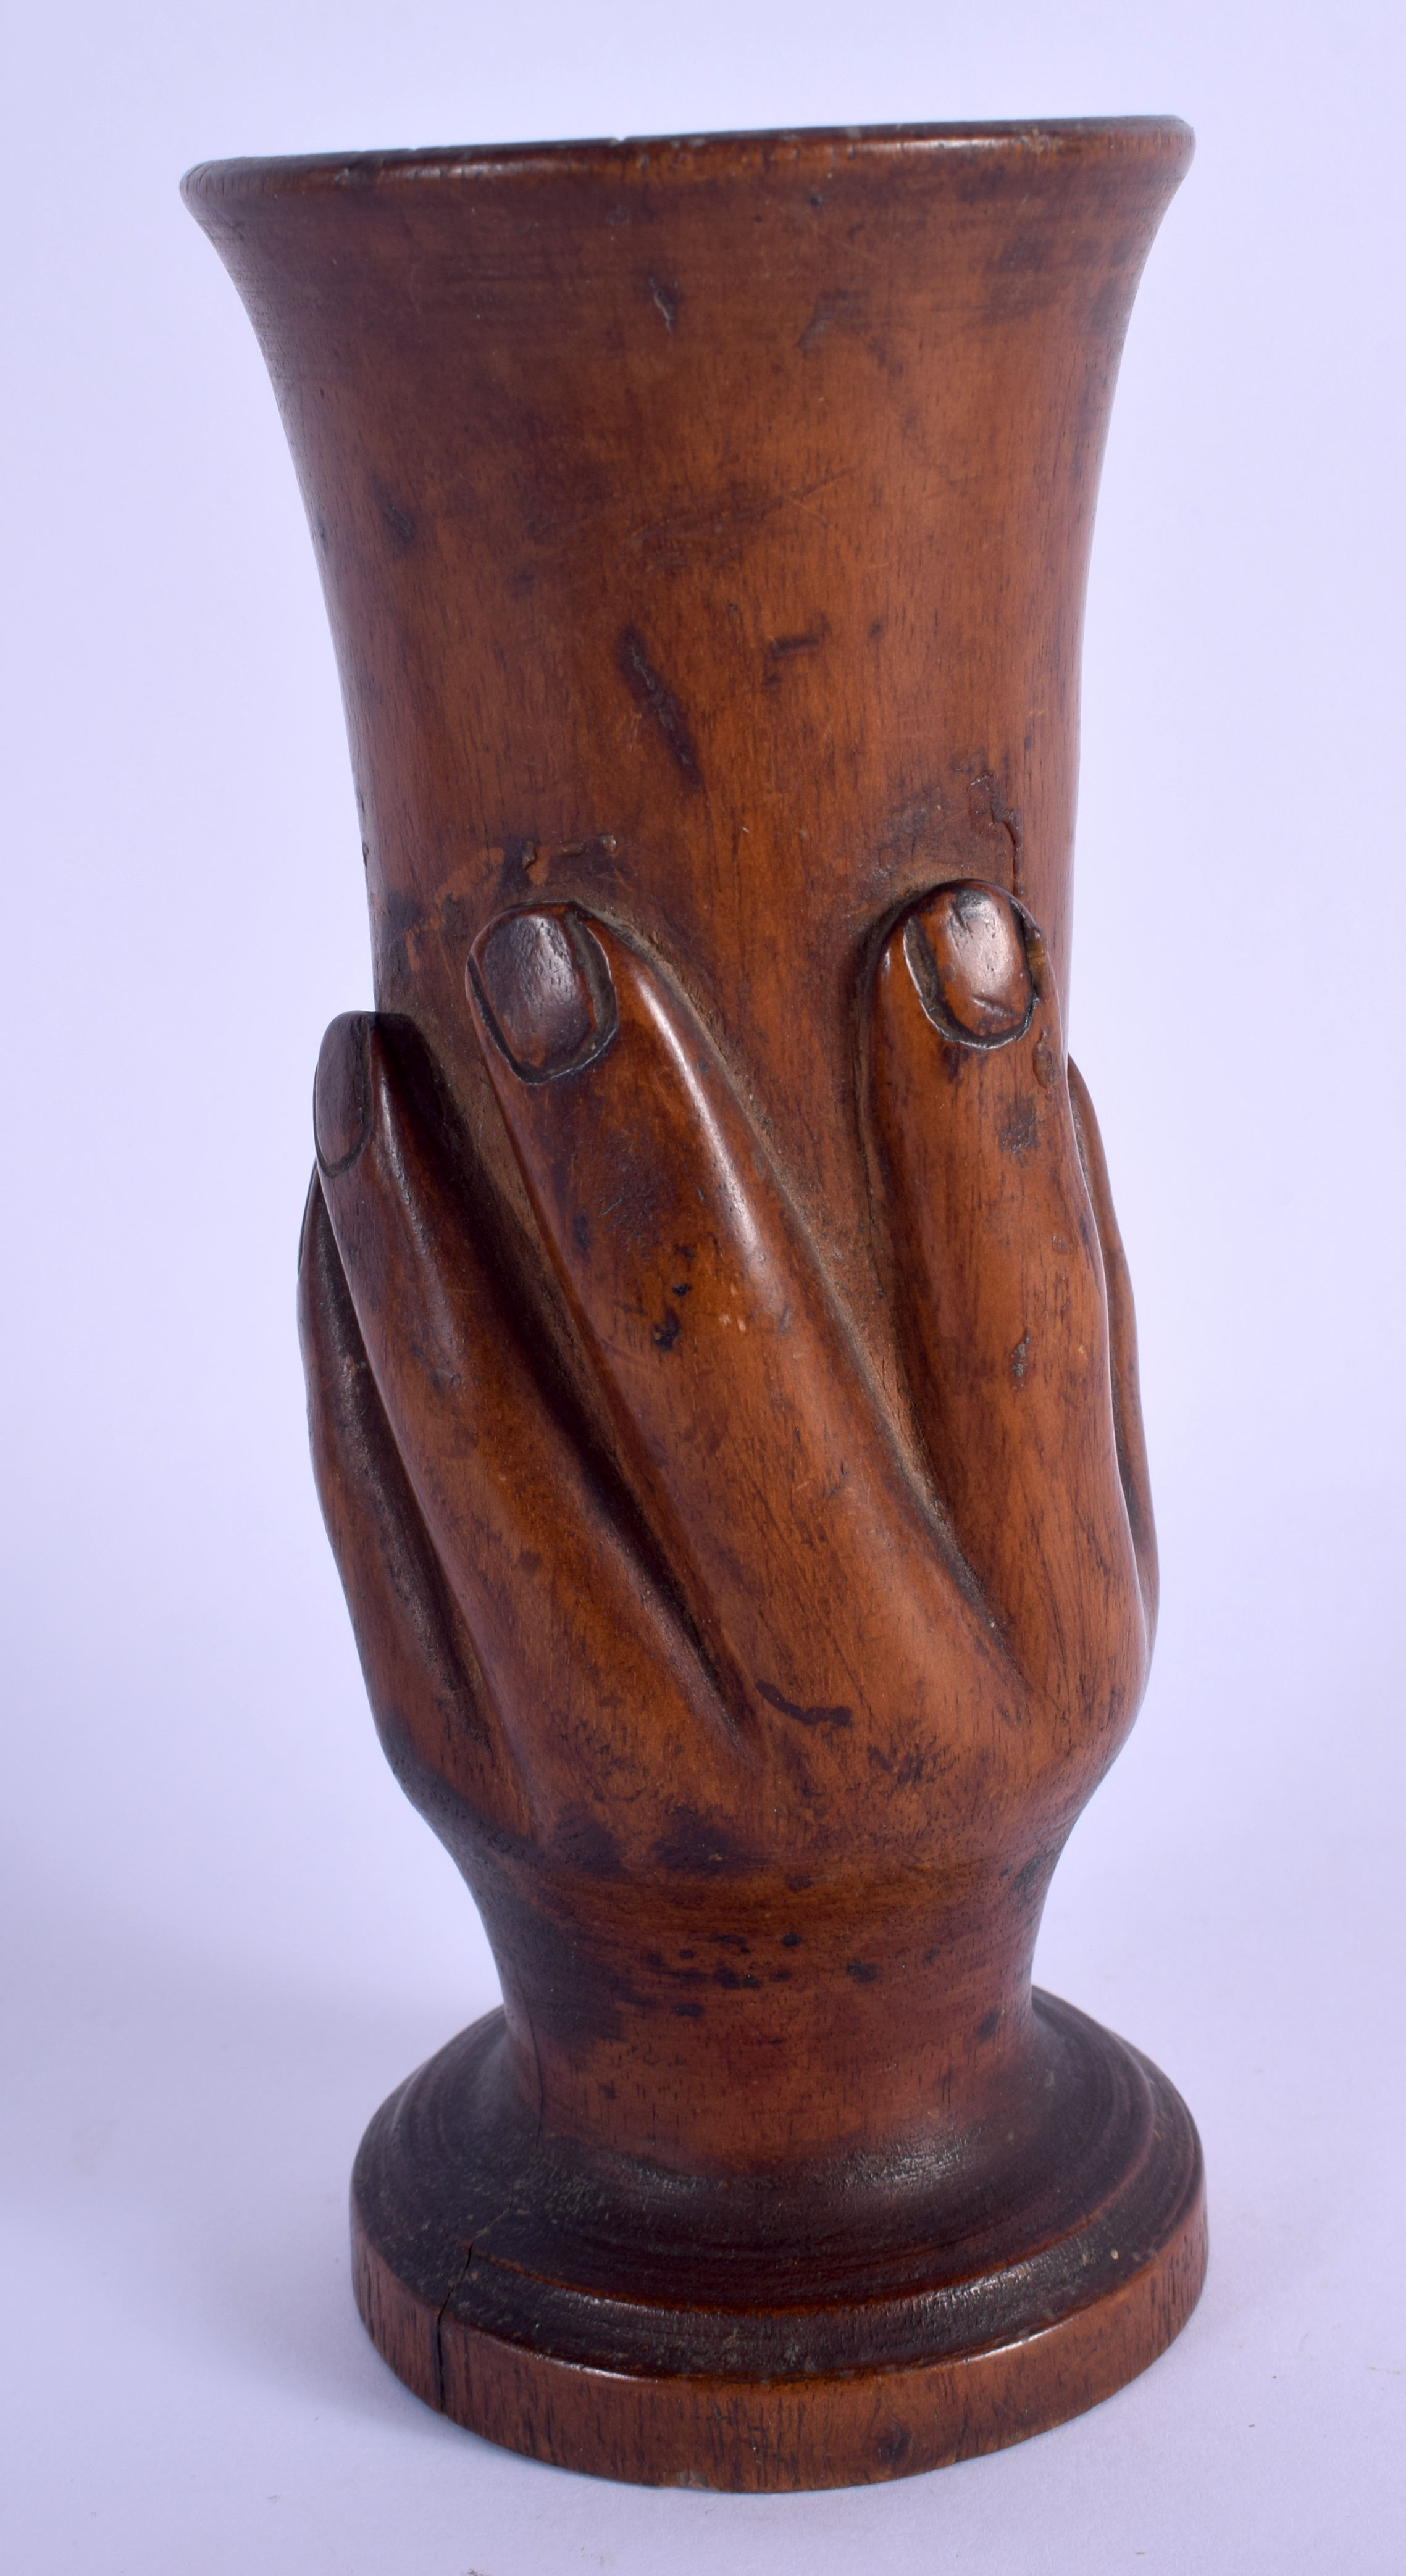 A RARE PITCAIRN ISLANDS CARVED WOOD VASE formed with an open hand. 19 cm high.